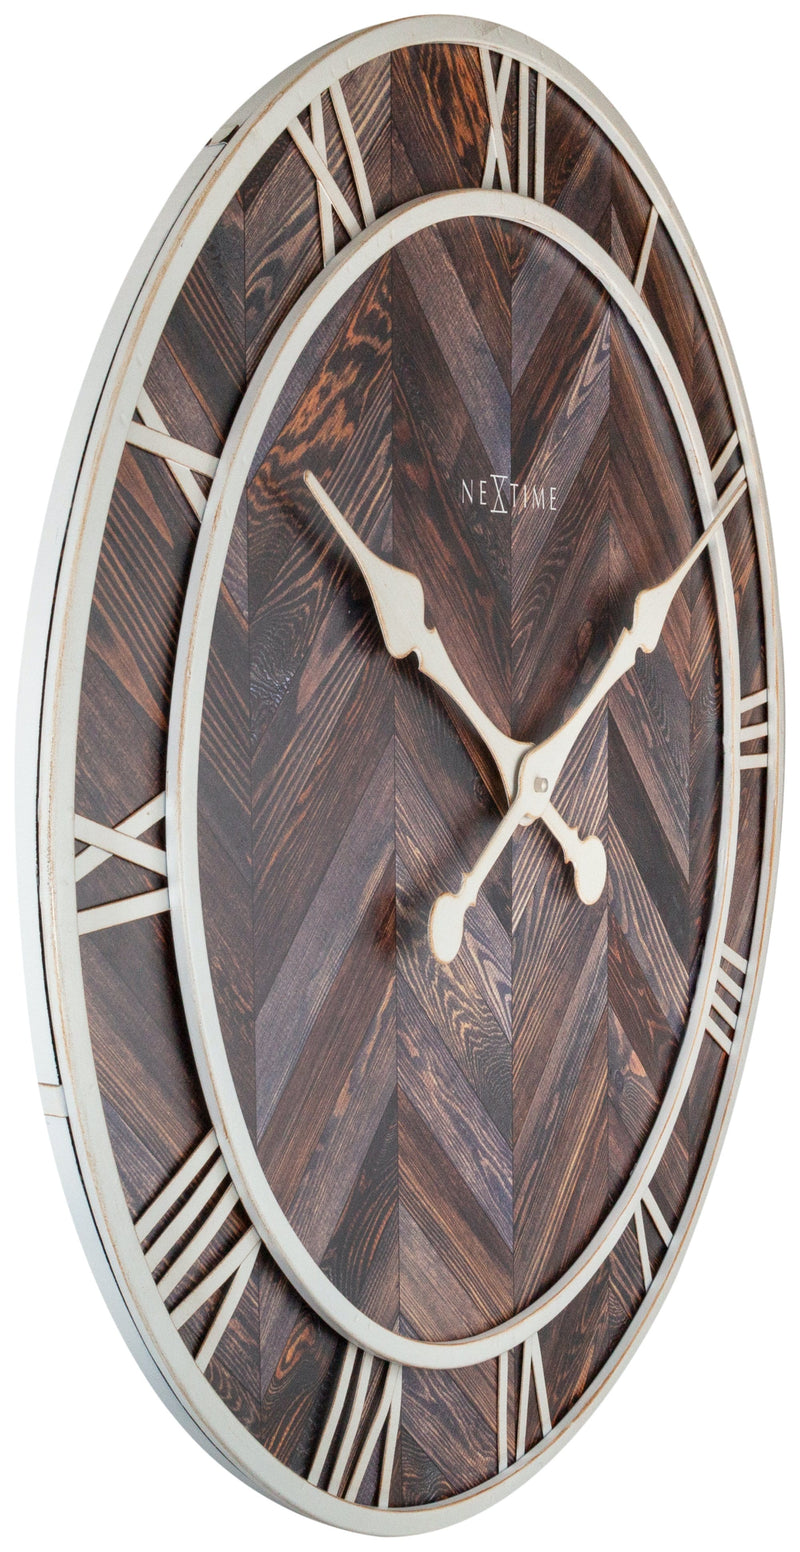 leftside 3245BR,Roman Vintage,NeXtime,Wood,Brown